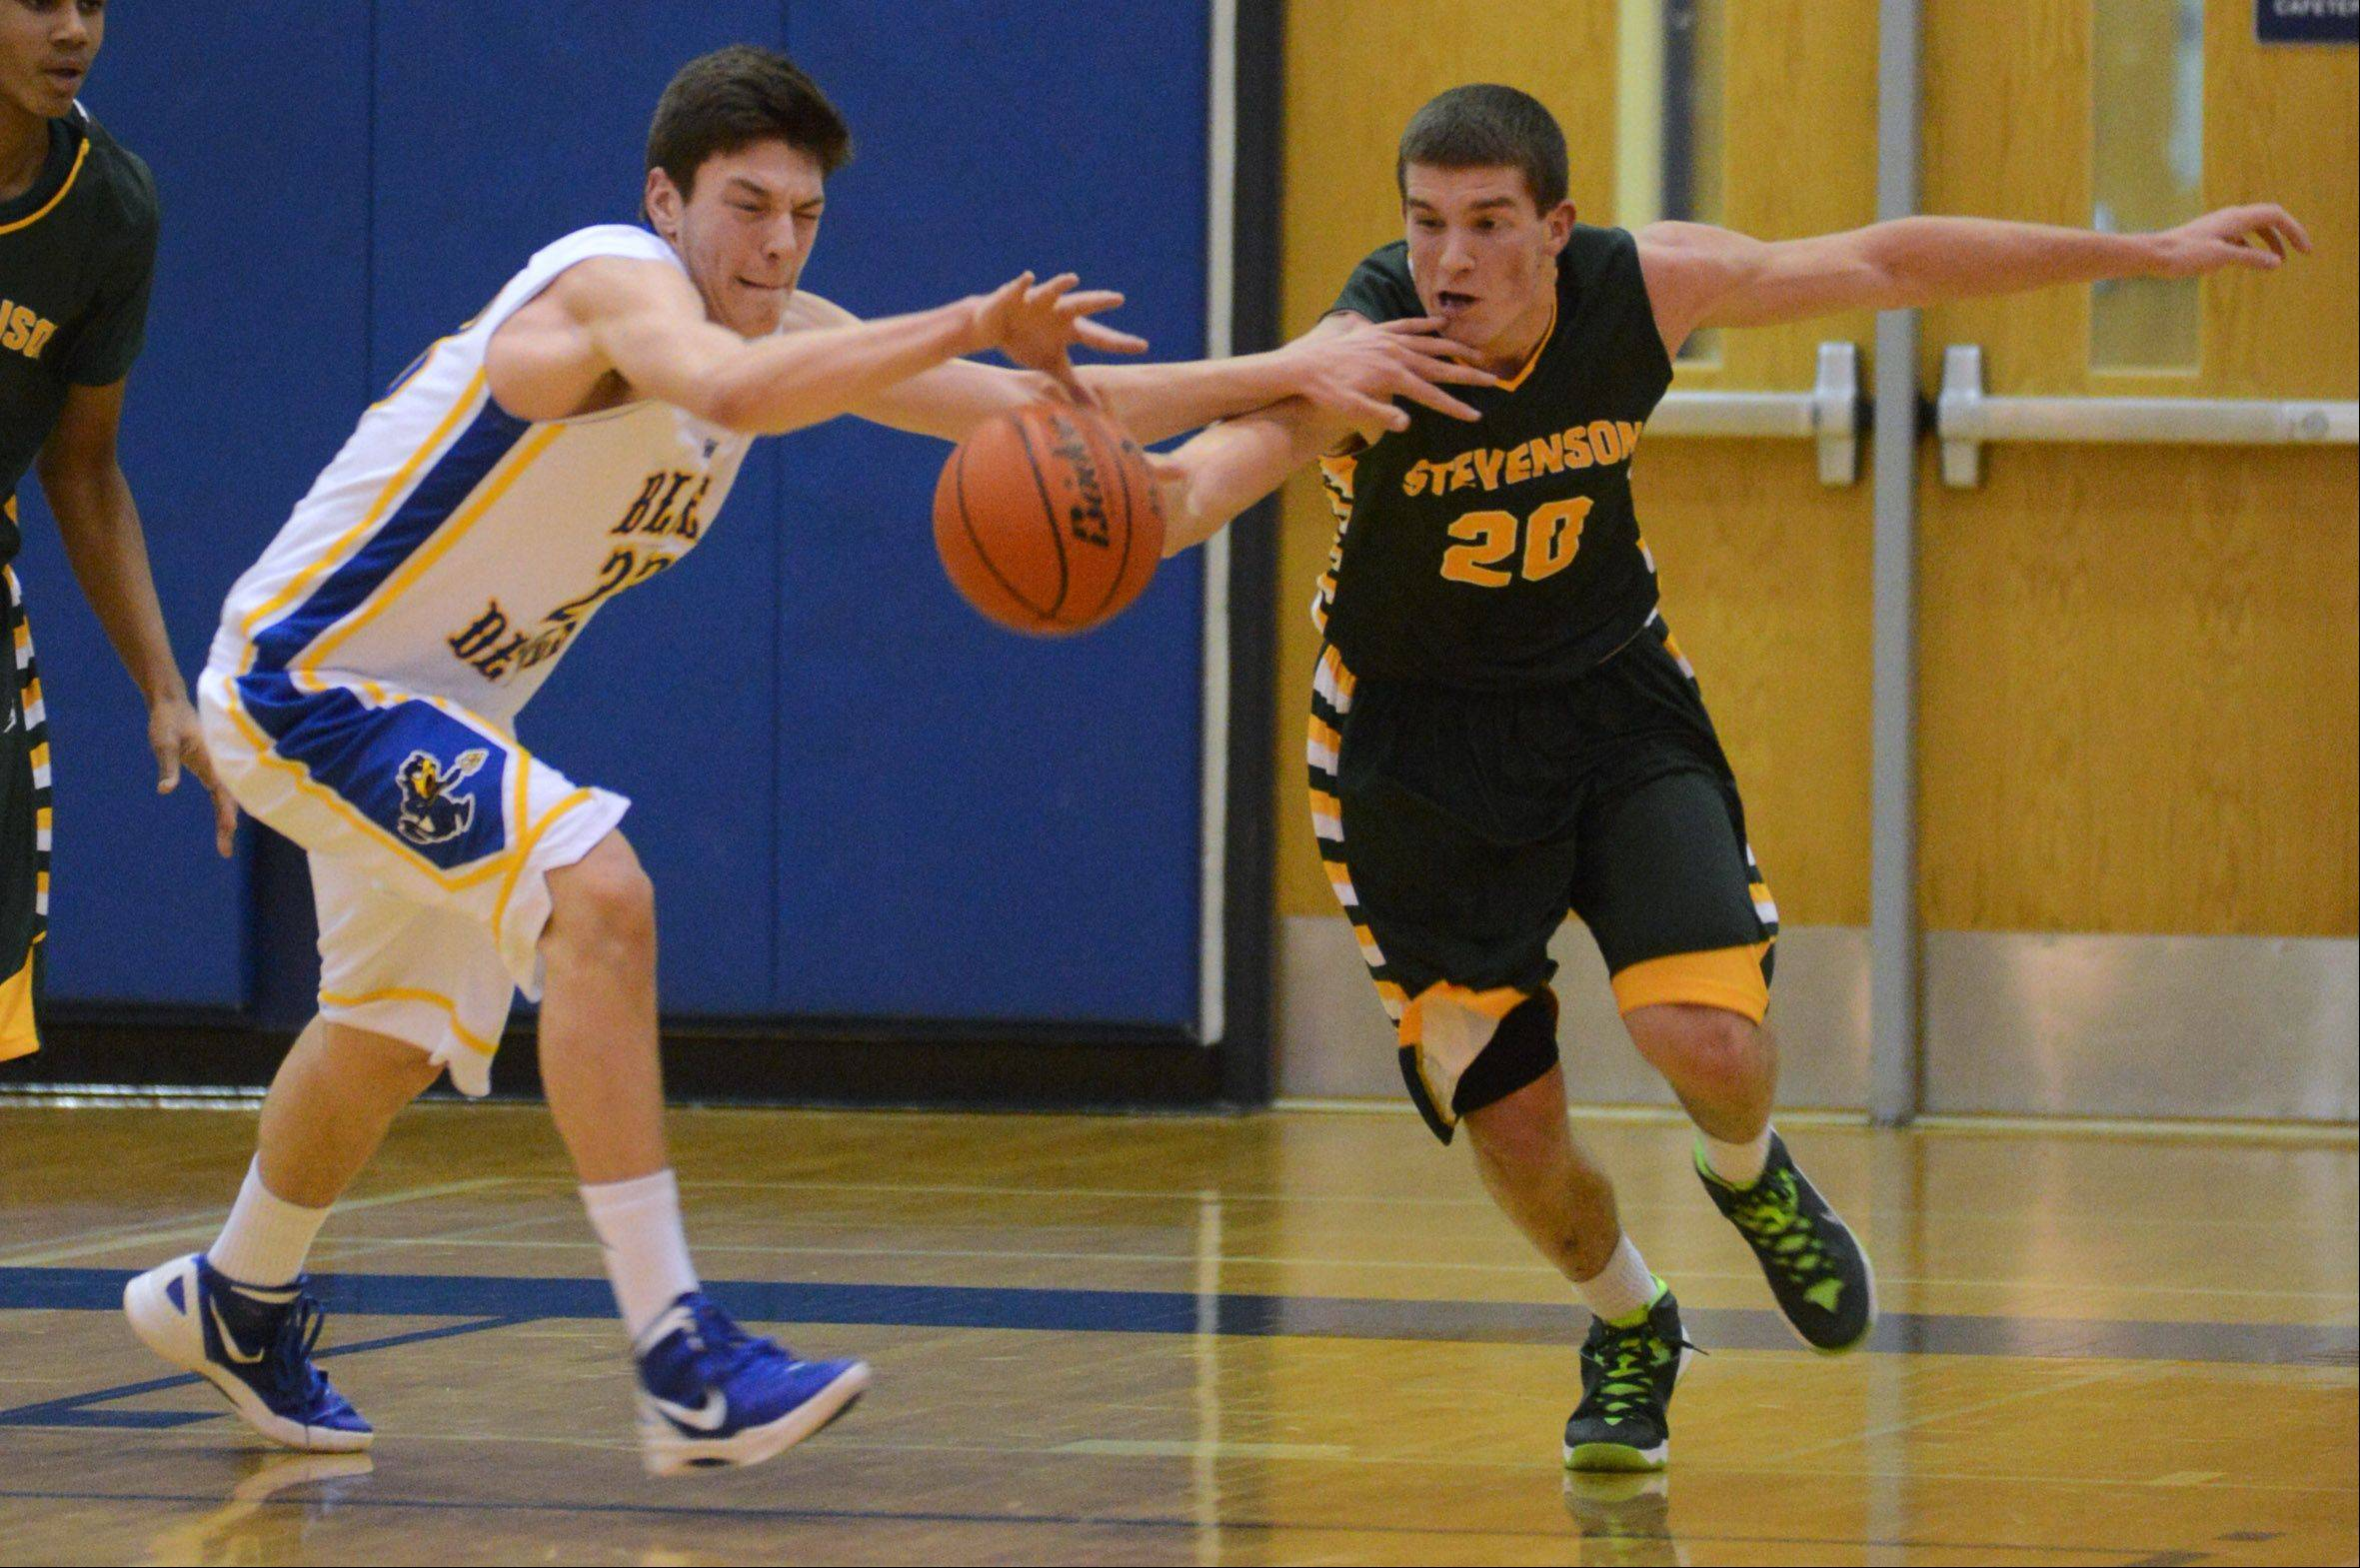 Warren's Jovan Jokic, left, and Stevenson's Matthew Morrissey race to the ball during Friday's basketball game in Gurnee.